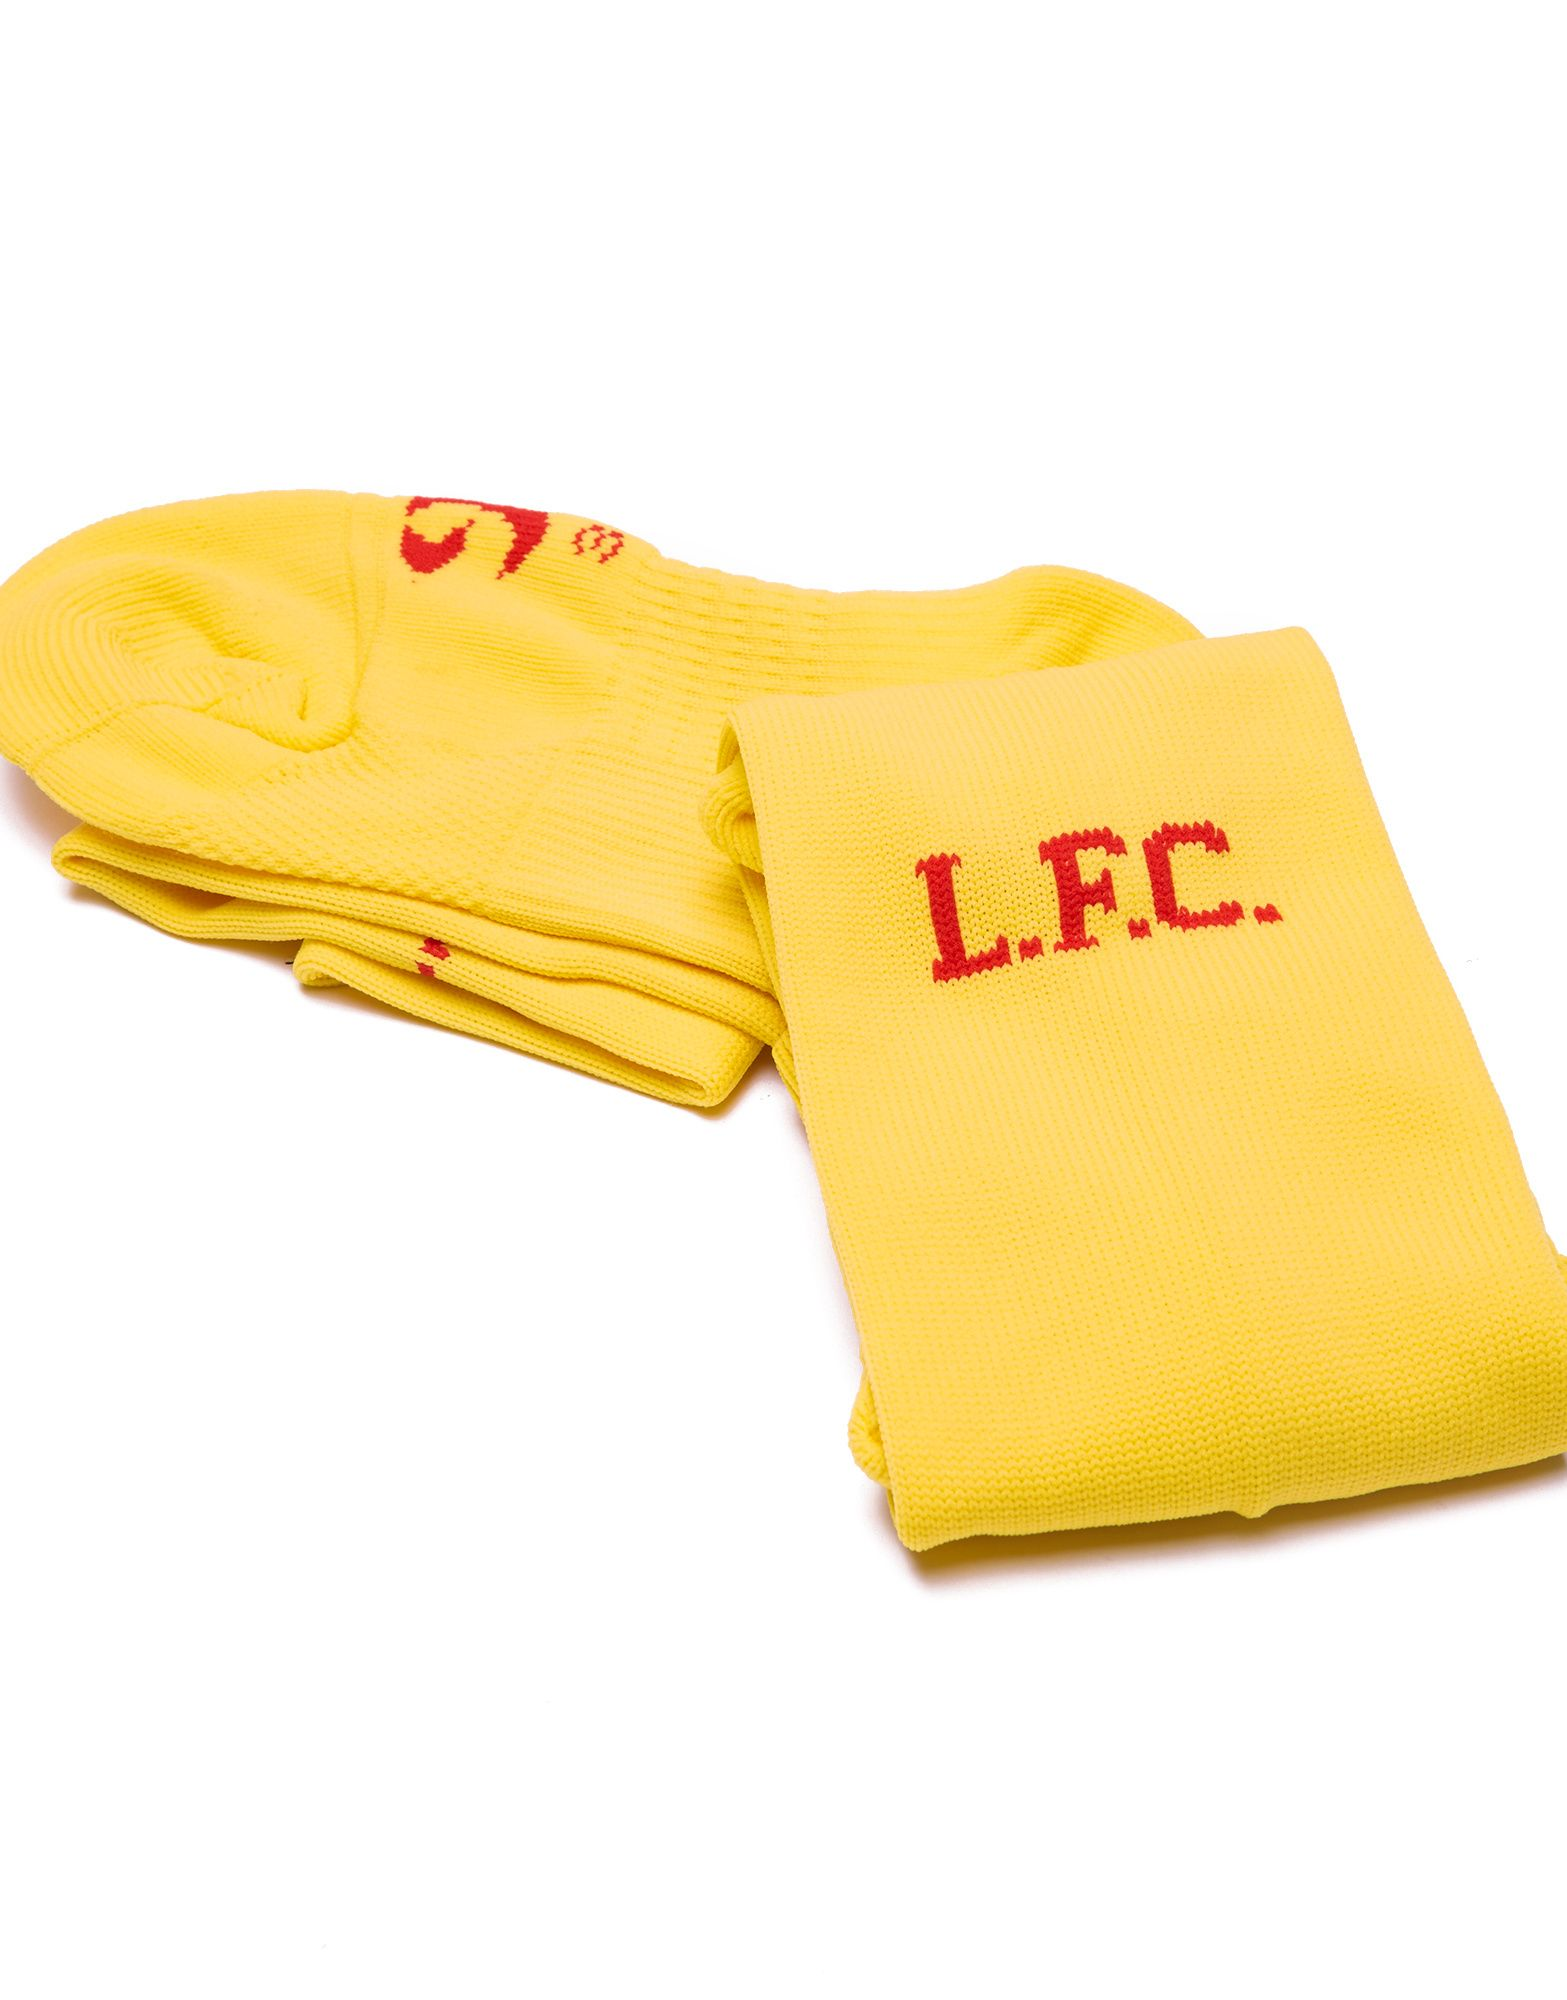 Warrior Sports Liverpool 2014 Away Socks